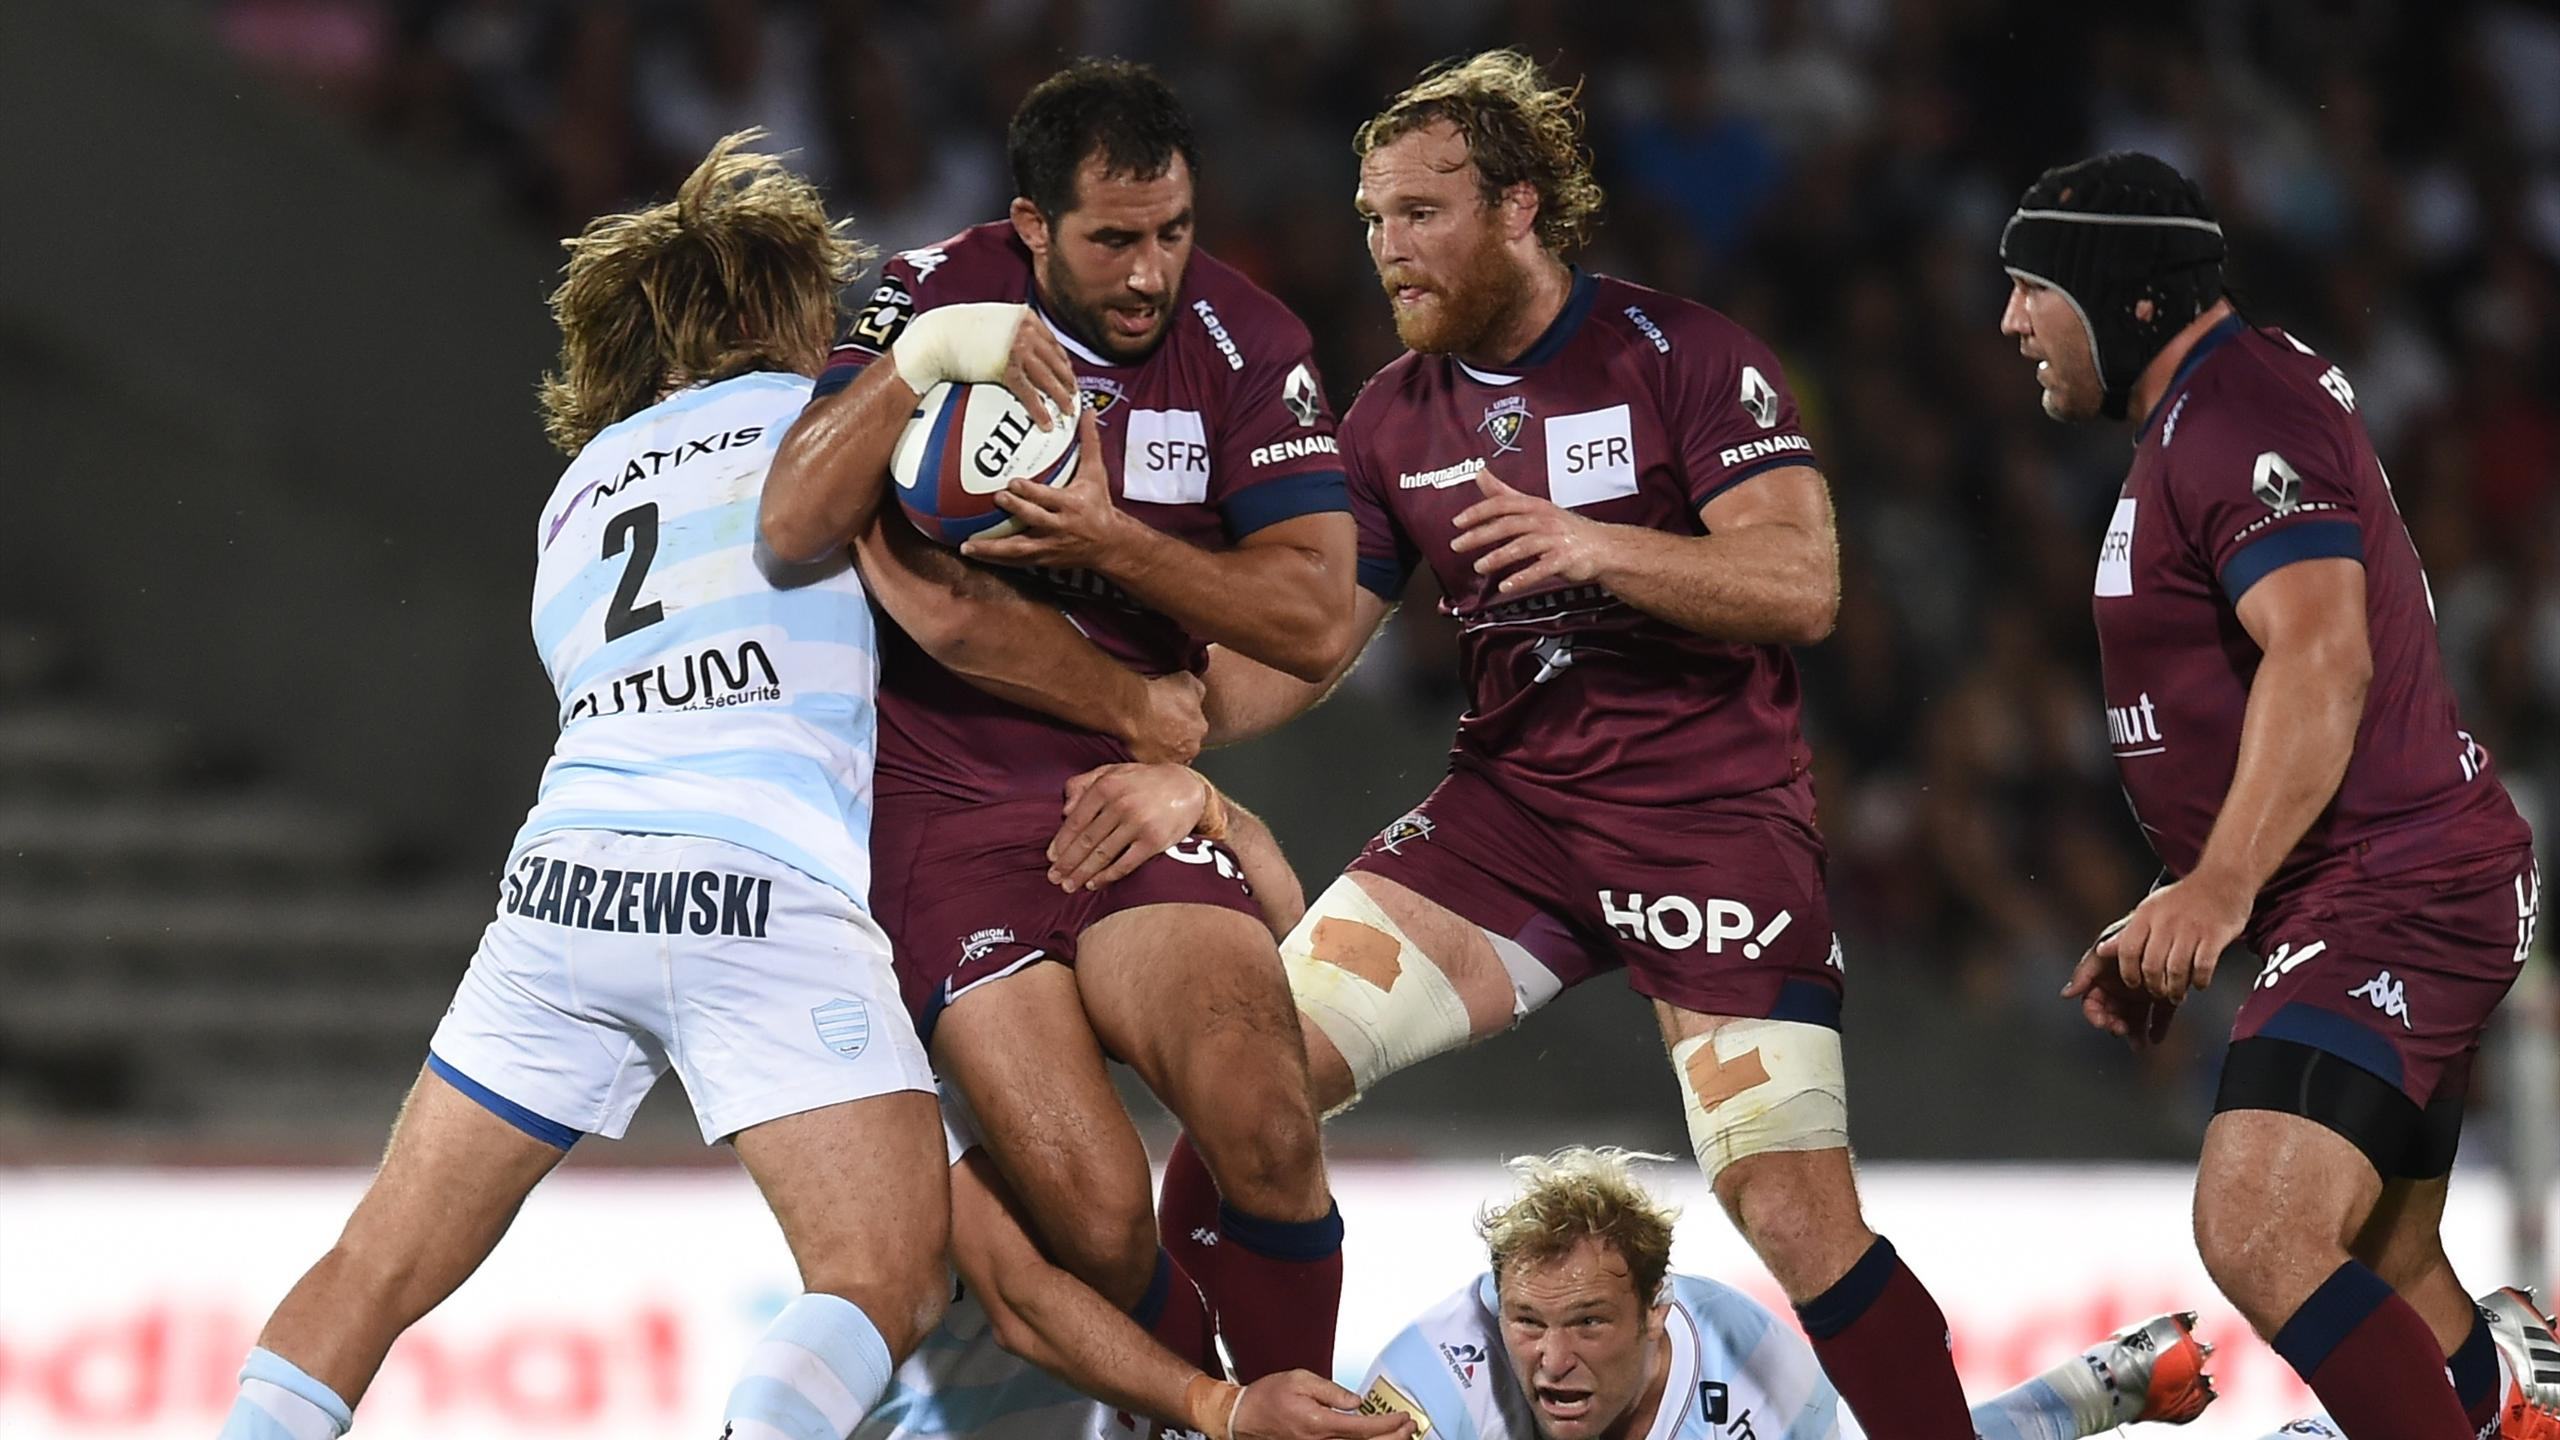 Louis-Benoît Madaule (UBB) face au Racing